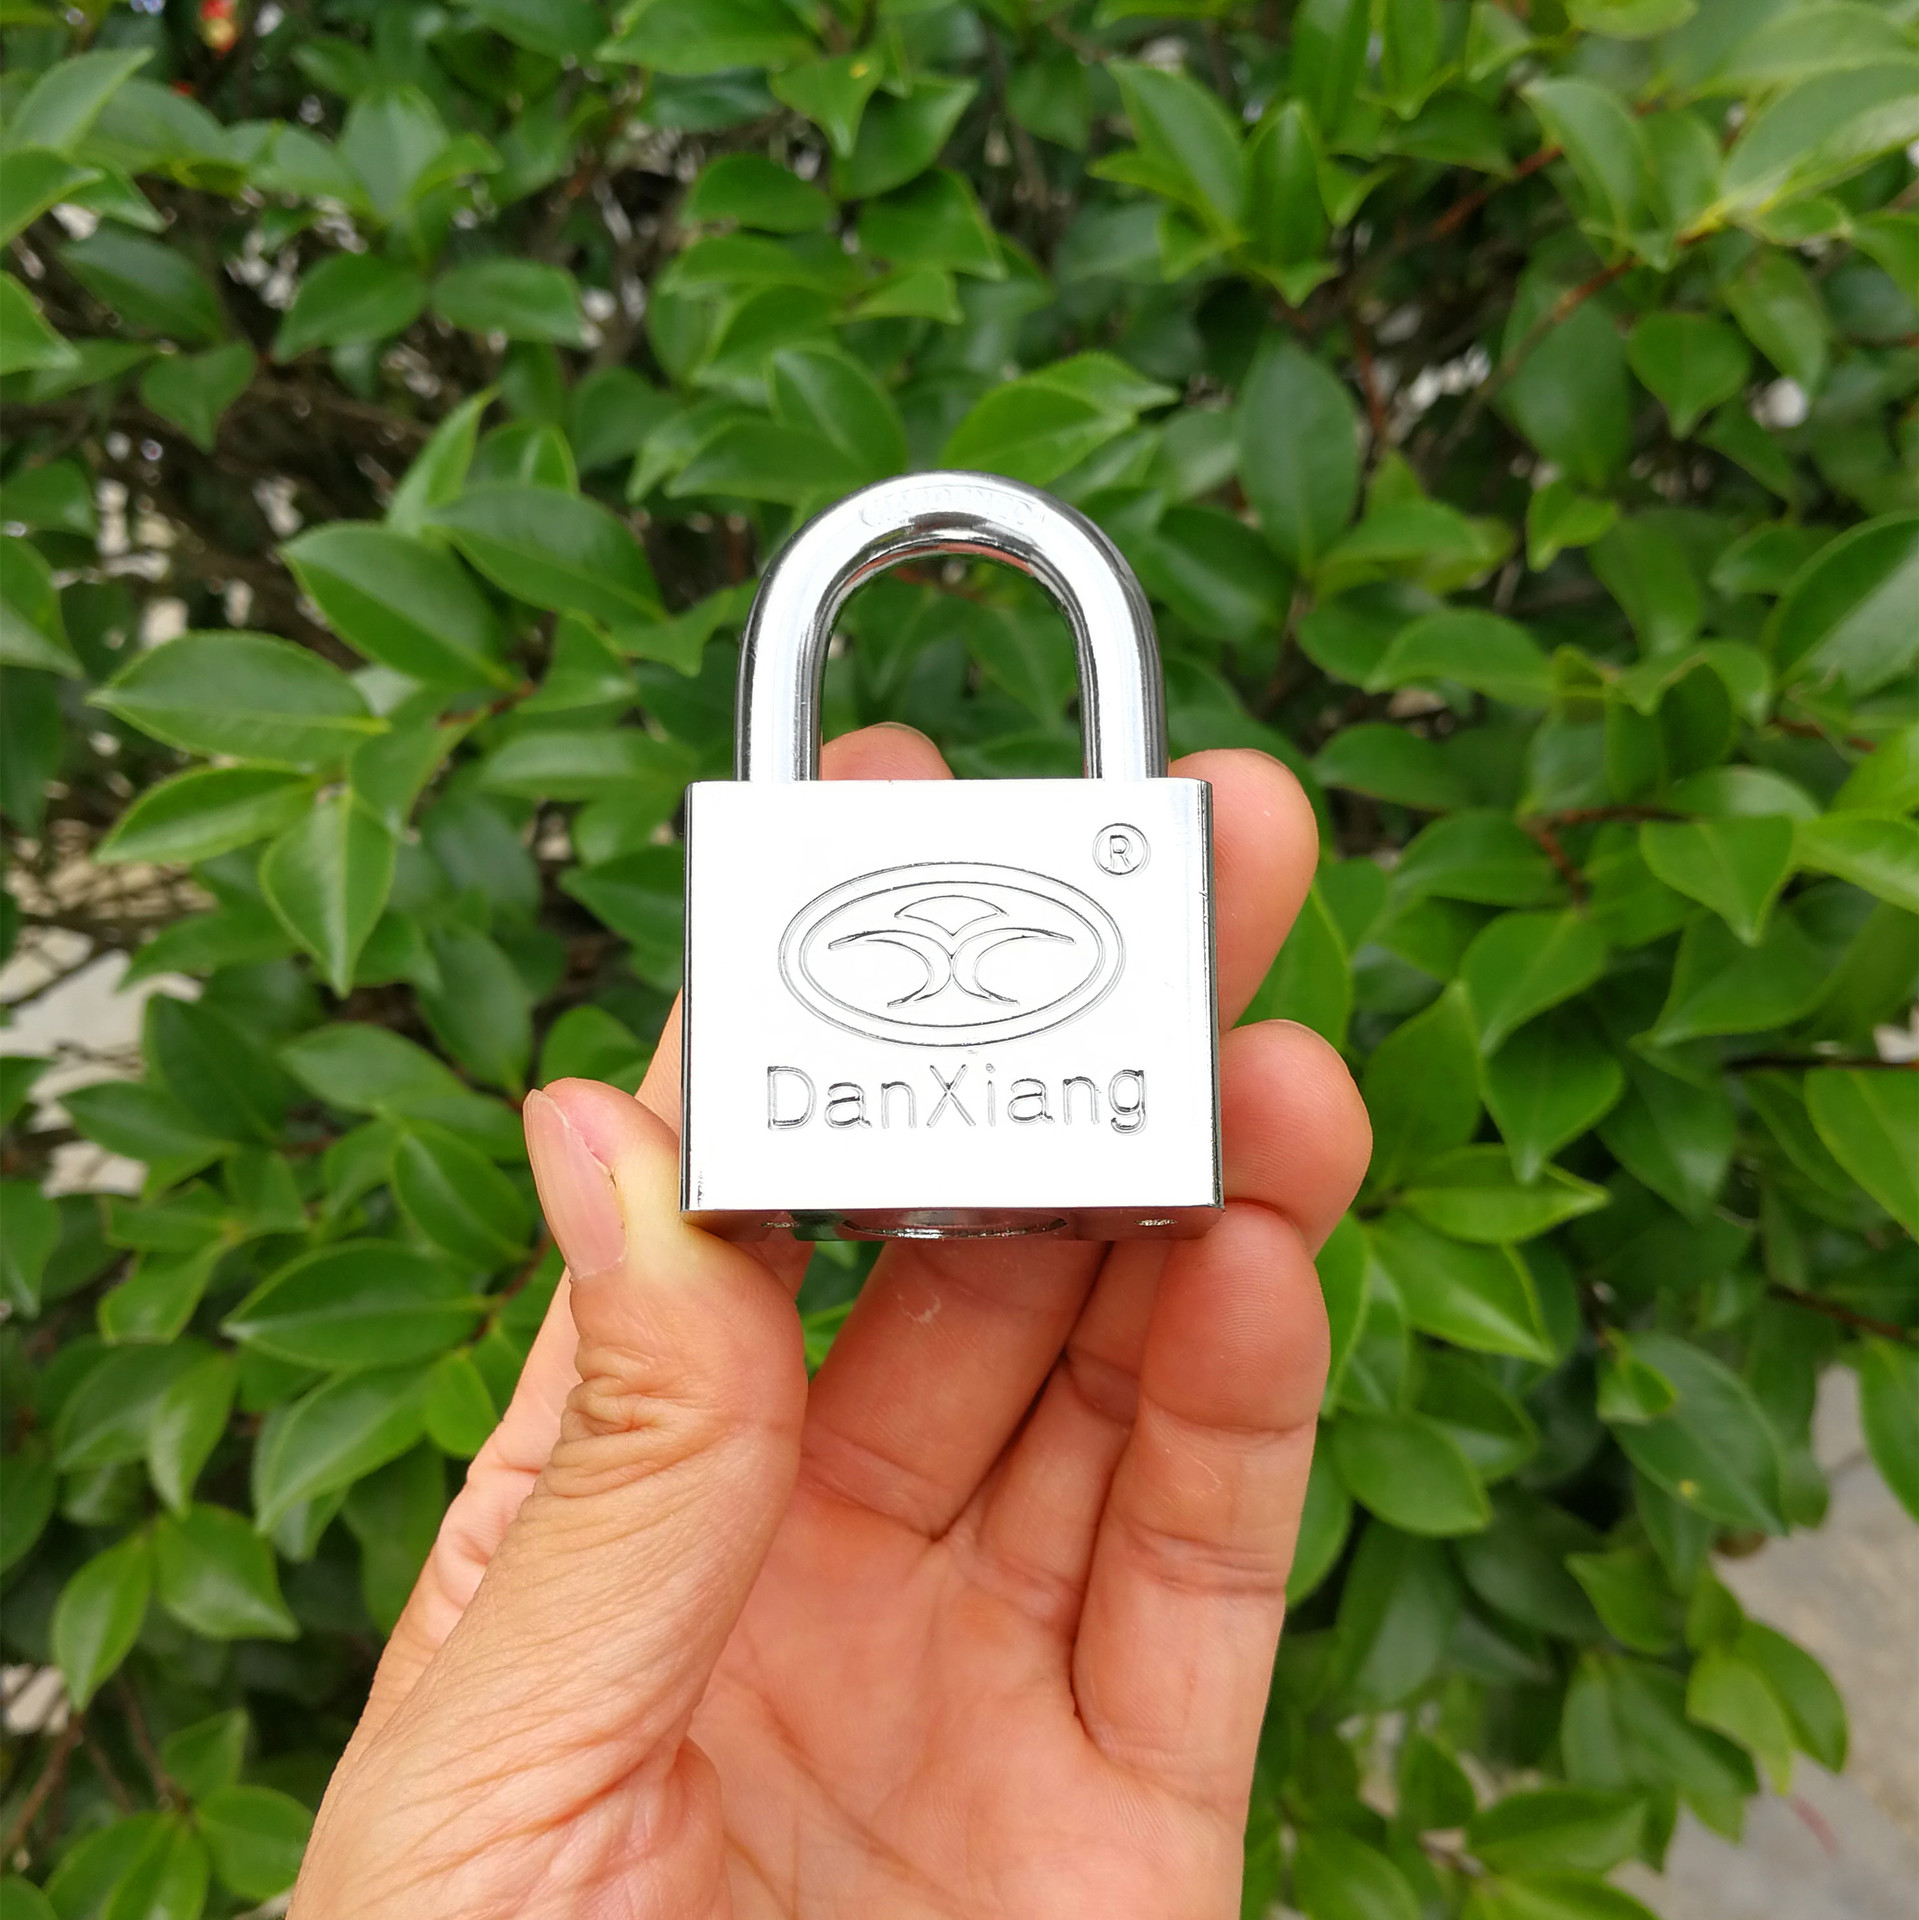 [Dan Xiang Lock Industry] Pujiang Manufacturers Wholesale Supply 50mm System Open Padlock Cargo Cabin Lock Through Open Safety P